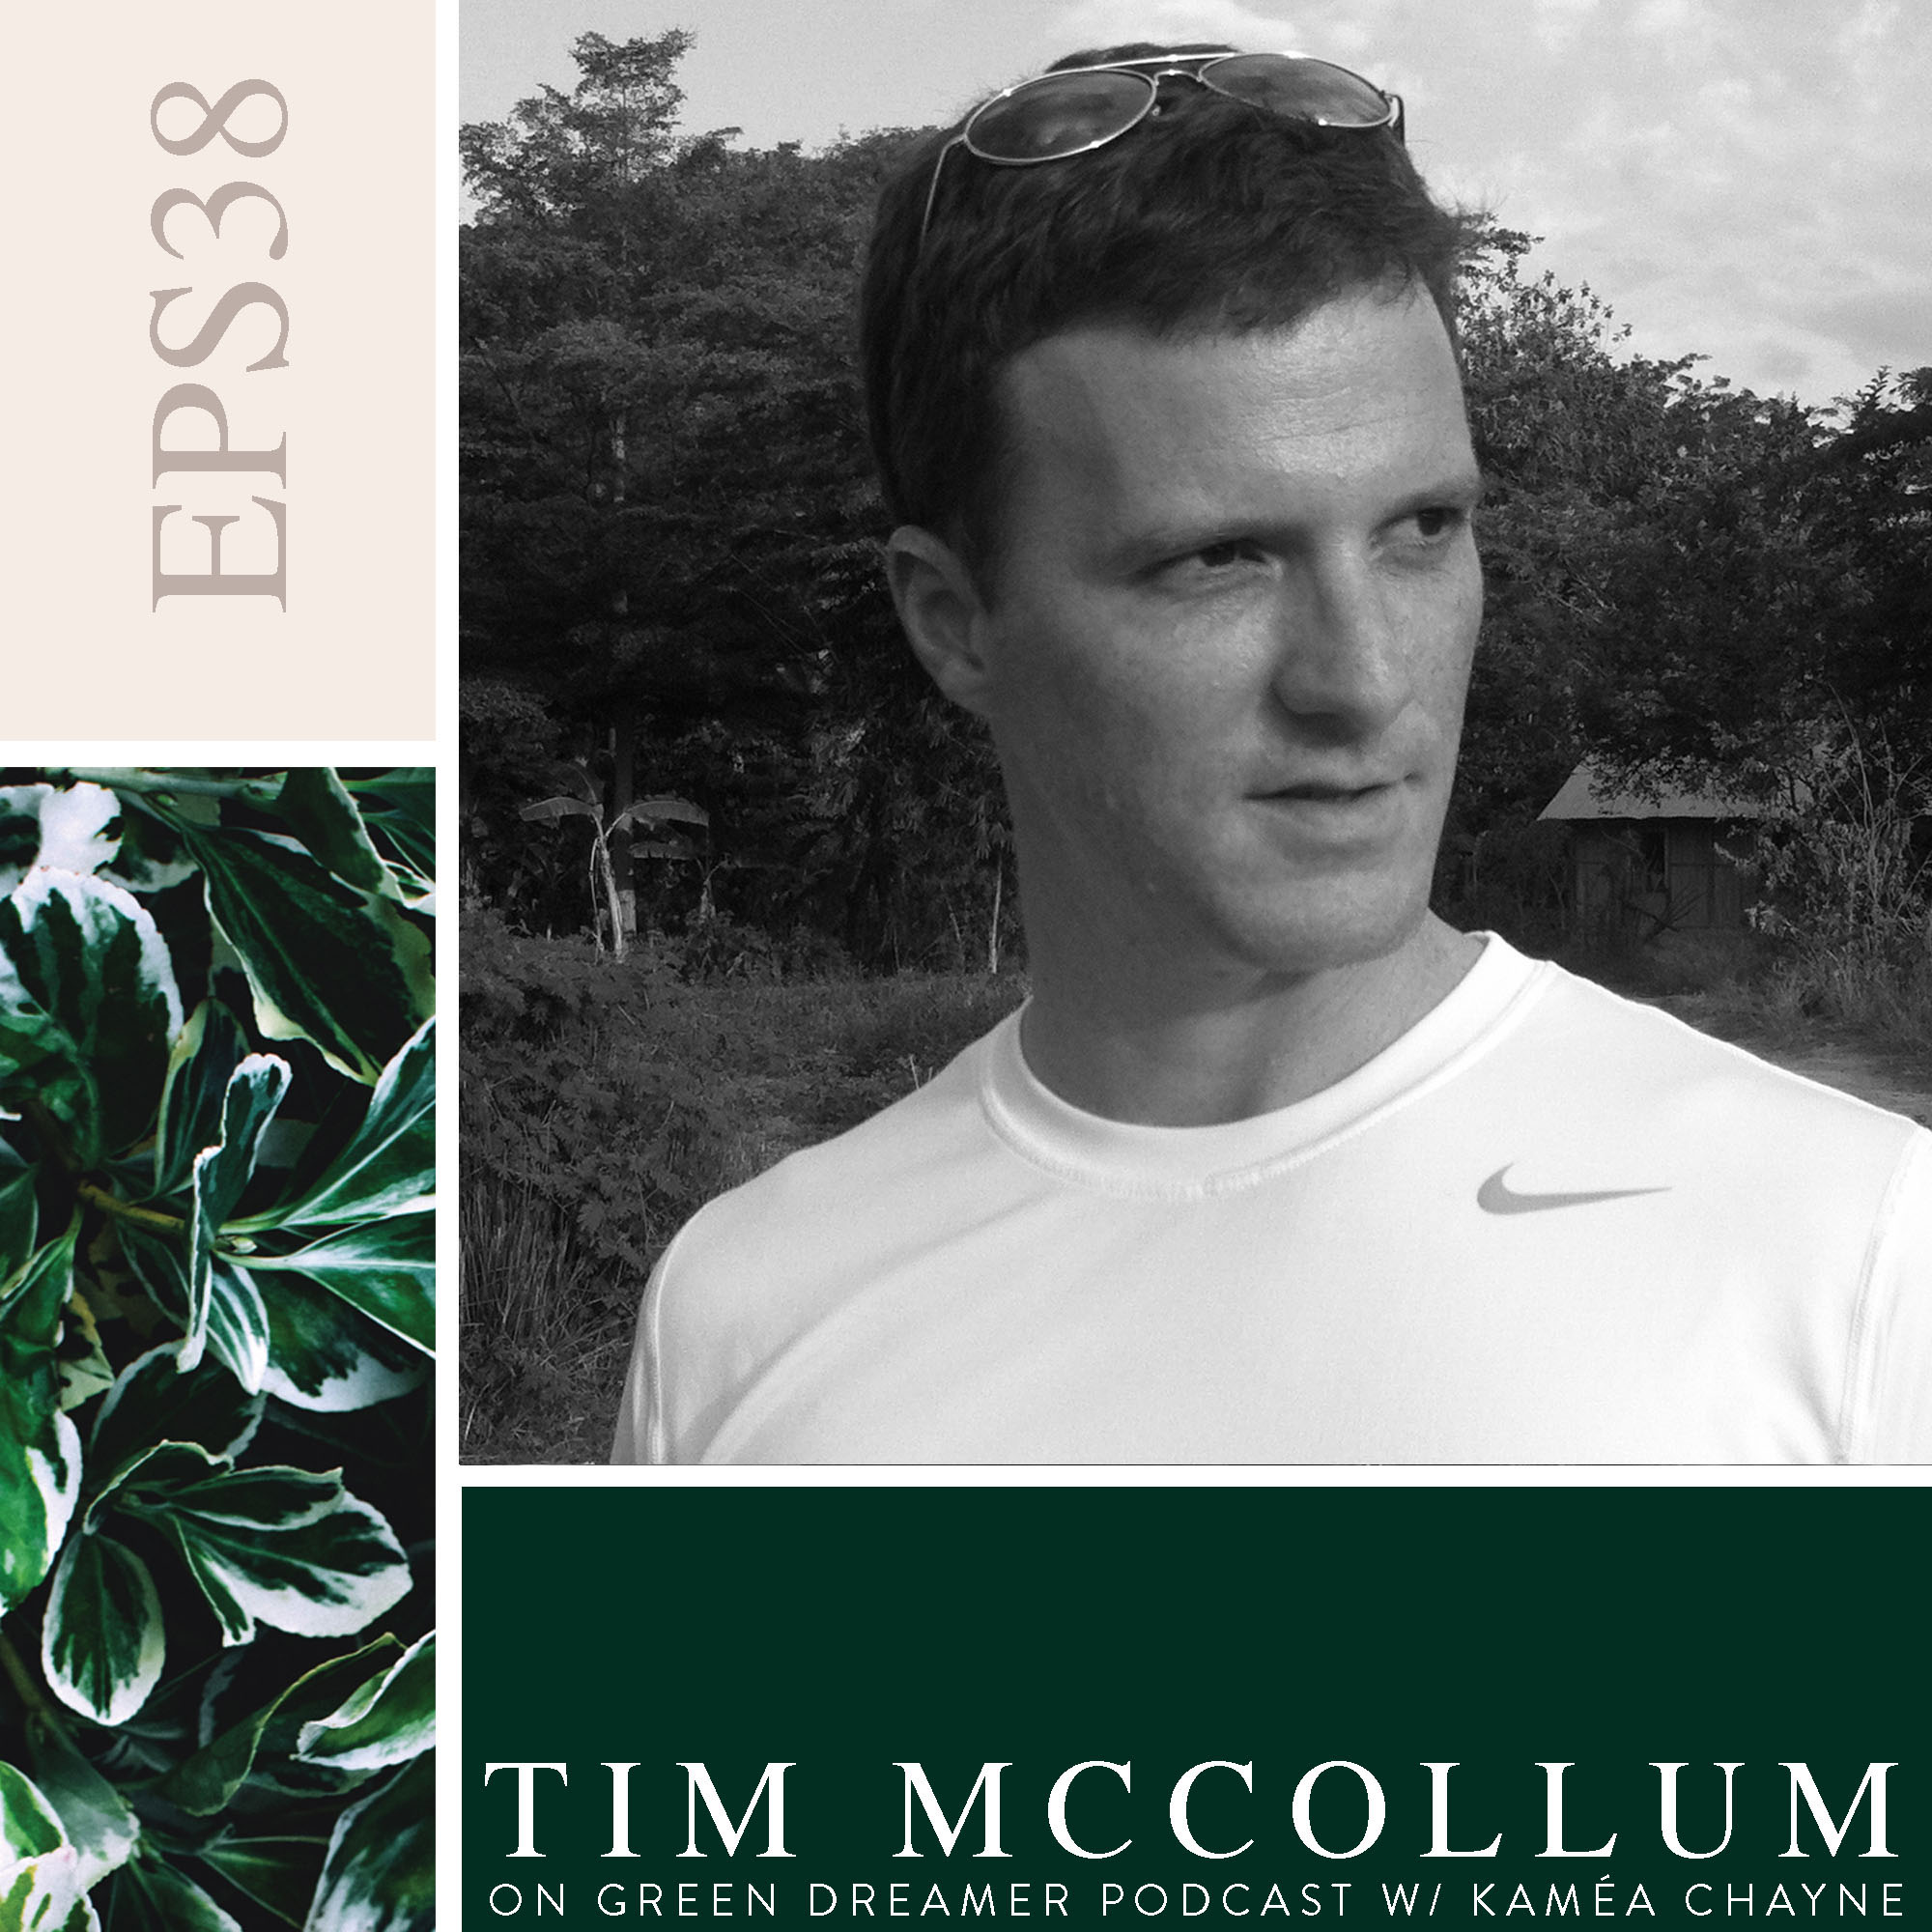 38) BW Tim-McCollum-Madécasse-talks-sustainability-on-Green-Dreamer-Podcast-with-Kaméa-Chayne.jpg